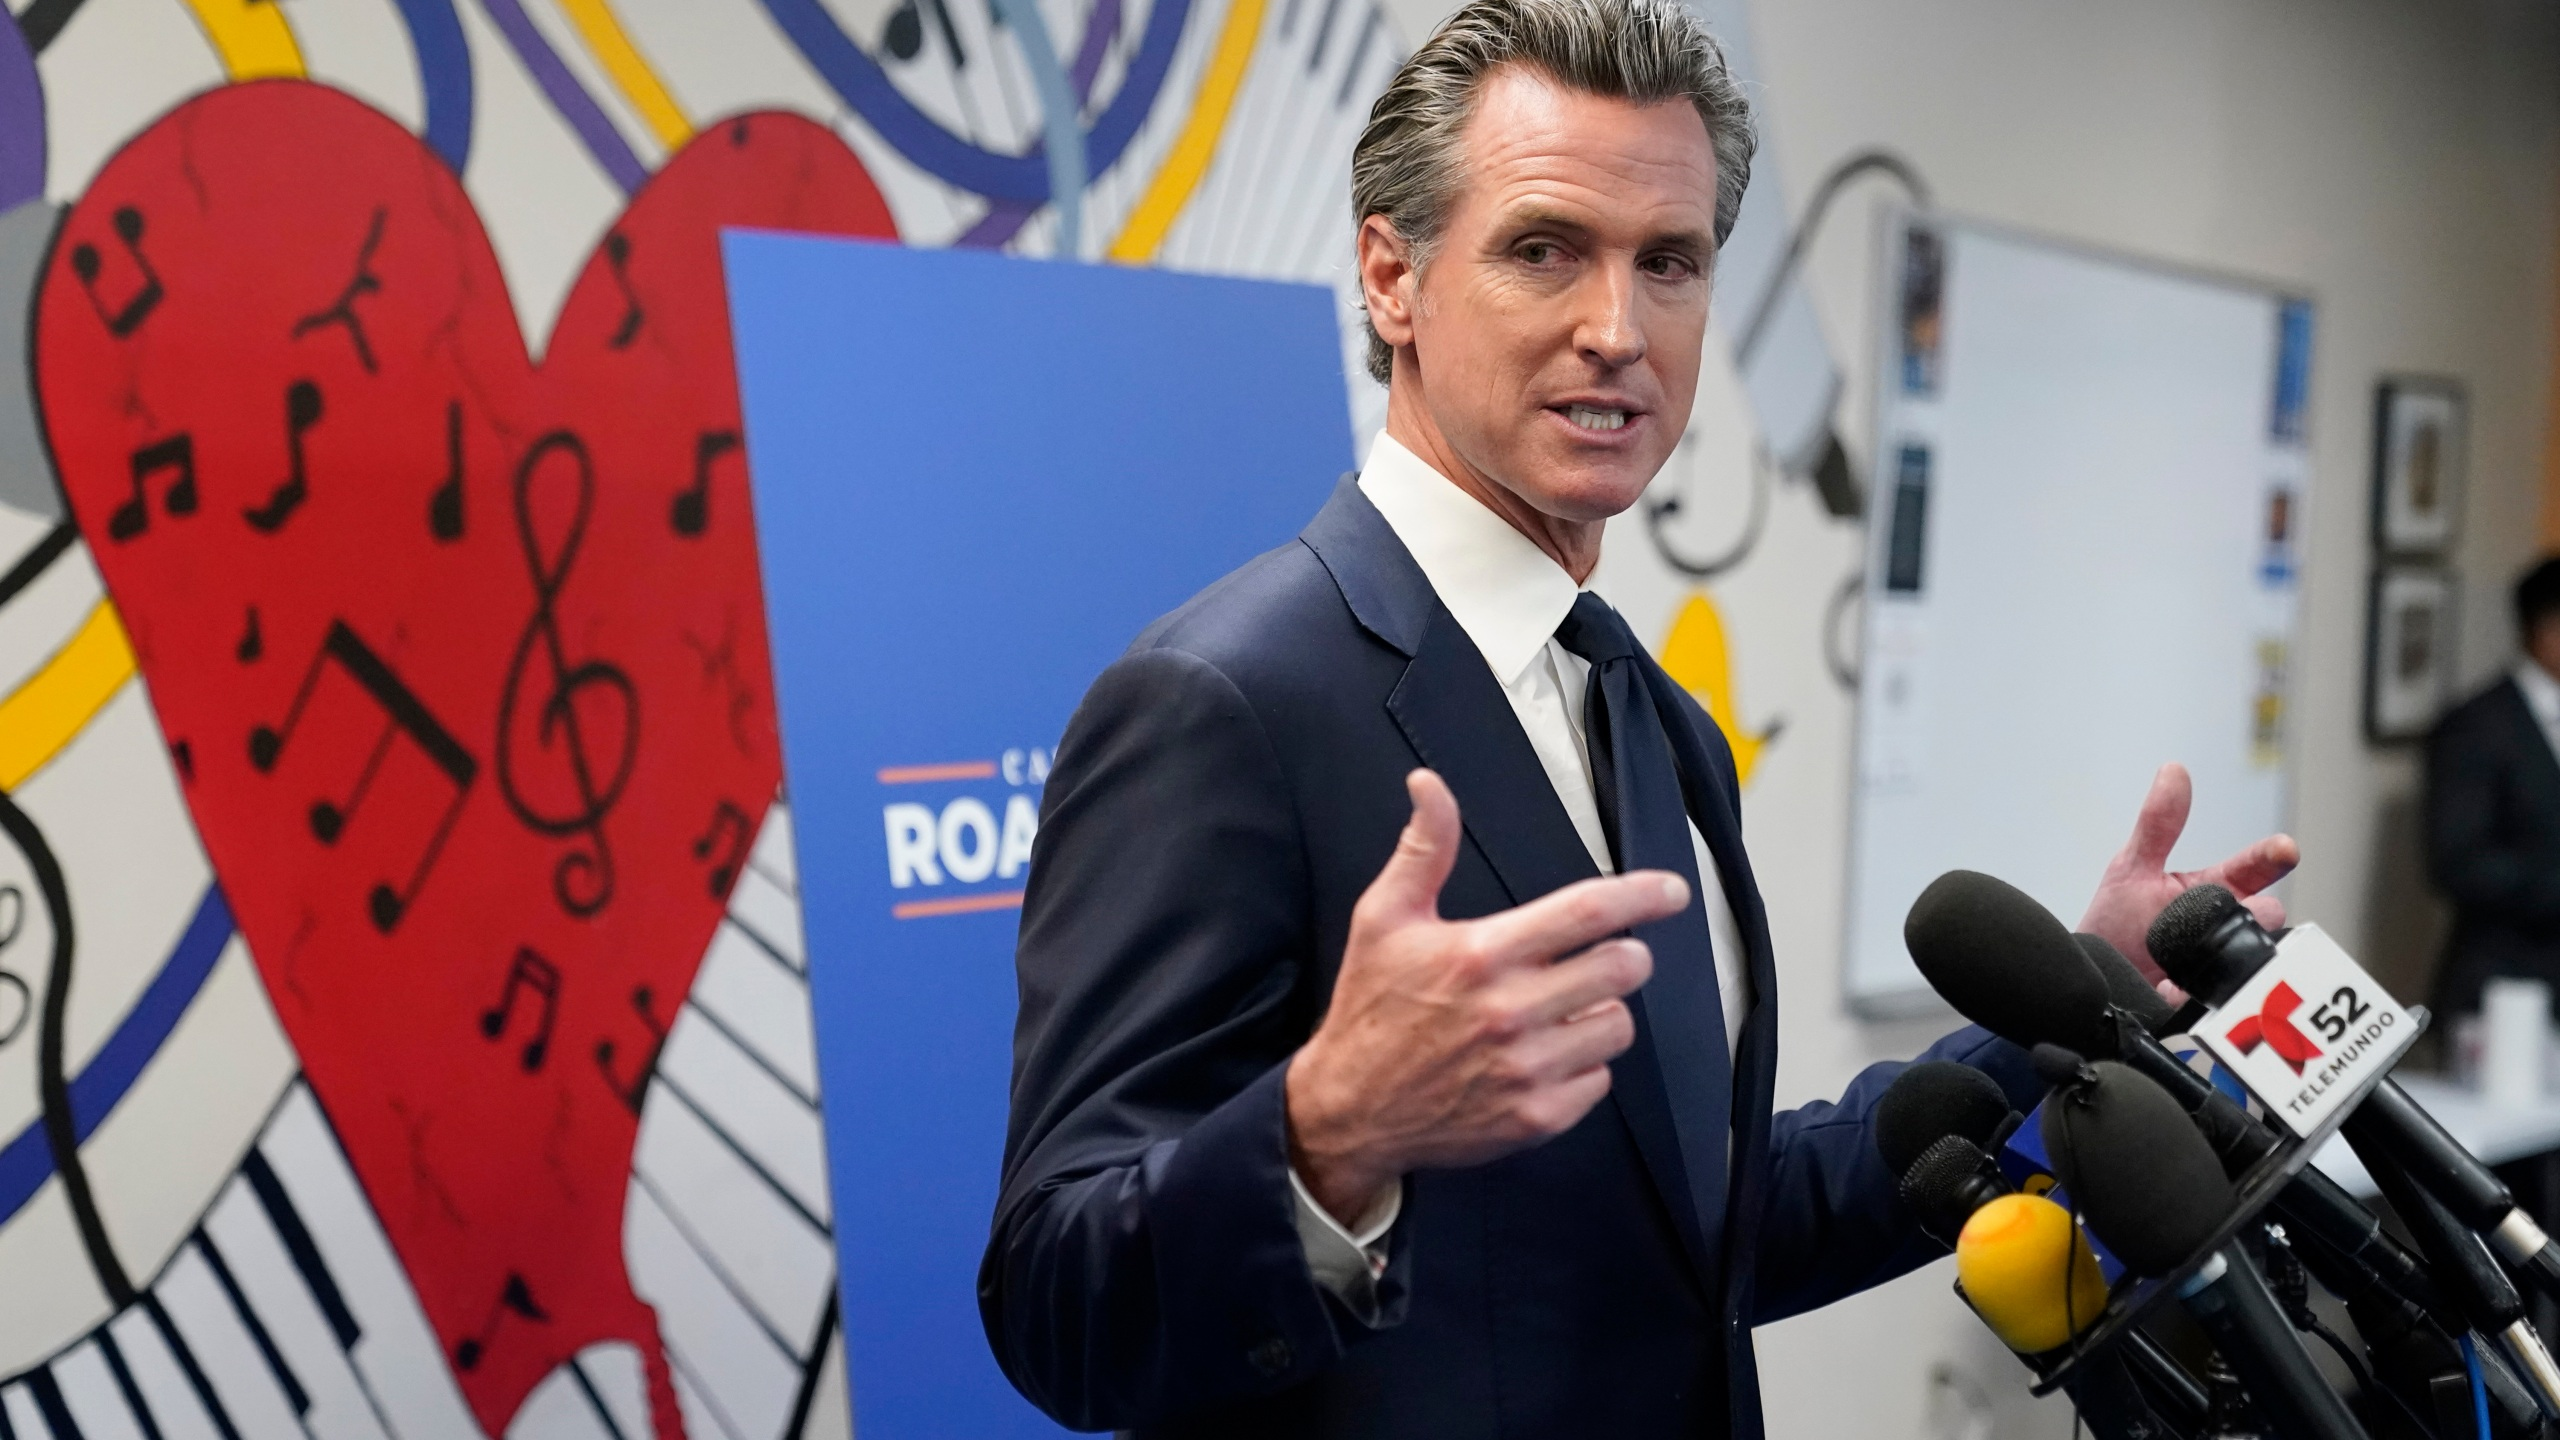 California Gov. Gavin Newsom fields questions after a rally where he signed the California Comeback Plan relief bill Tuesday, July 13, 2021, in Los Angeles. (AP Photo/Marcio Jose Sanchez)